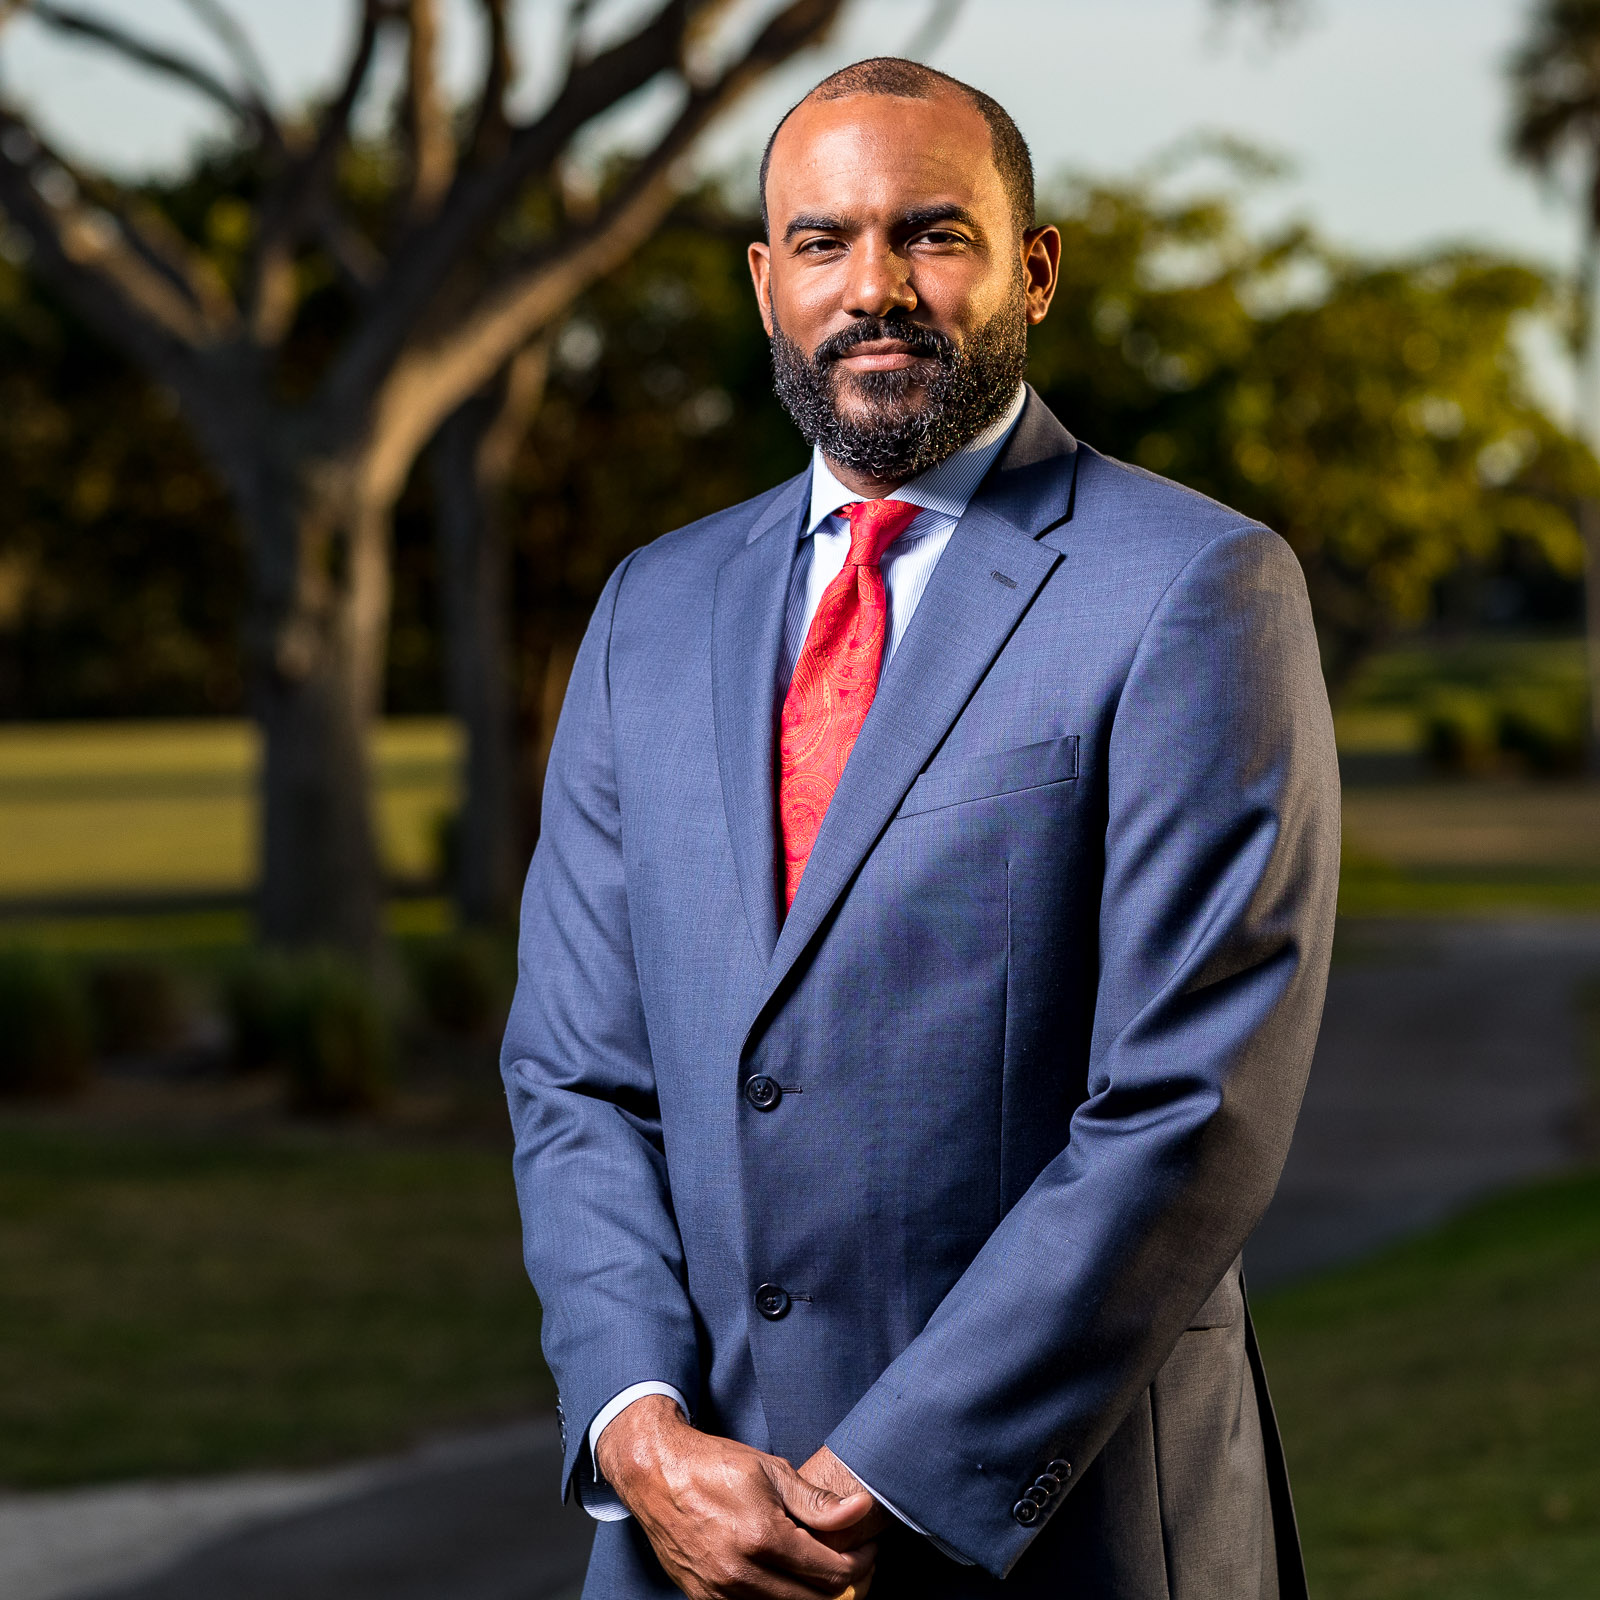 Images from the head shot session with Dean Taylor on Saturday, January 19, 2019 at the Miami Shores Country Club in Miami Shores, FL / Photo by Matt Pendleton for Matt Pendleton Photography.